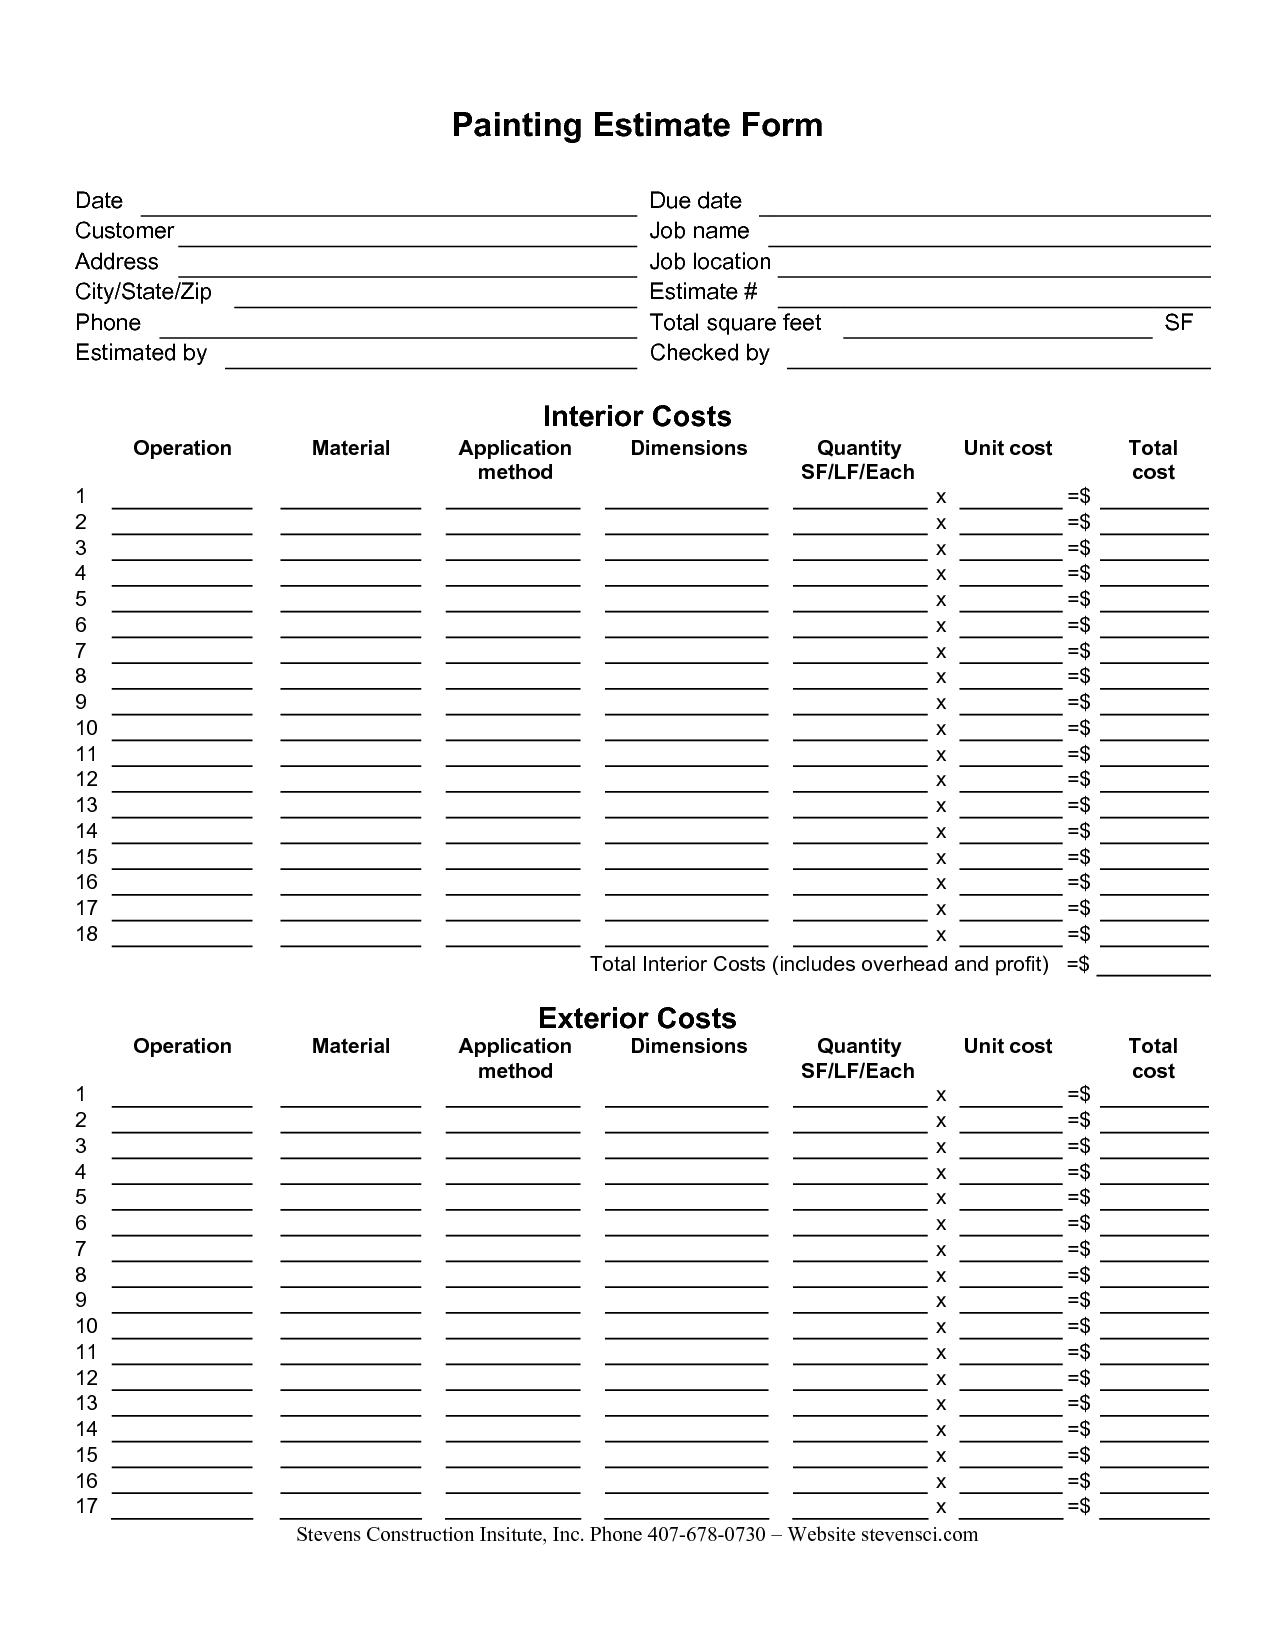 Painting Estimate Forms | Painting Estimate Form | International with regard to Paint Proposal Template Word Doc